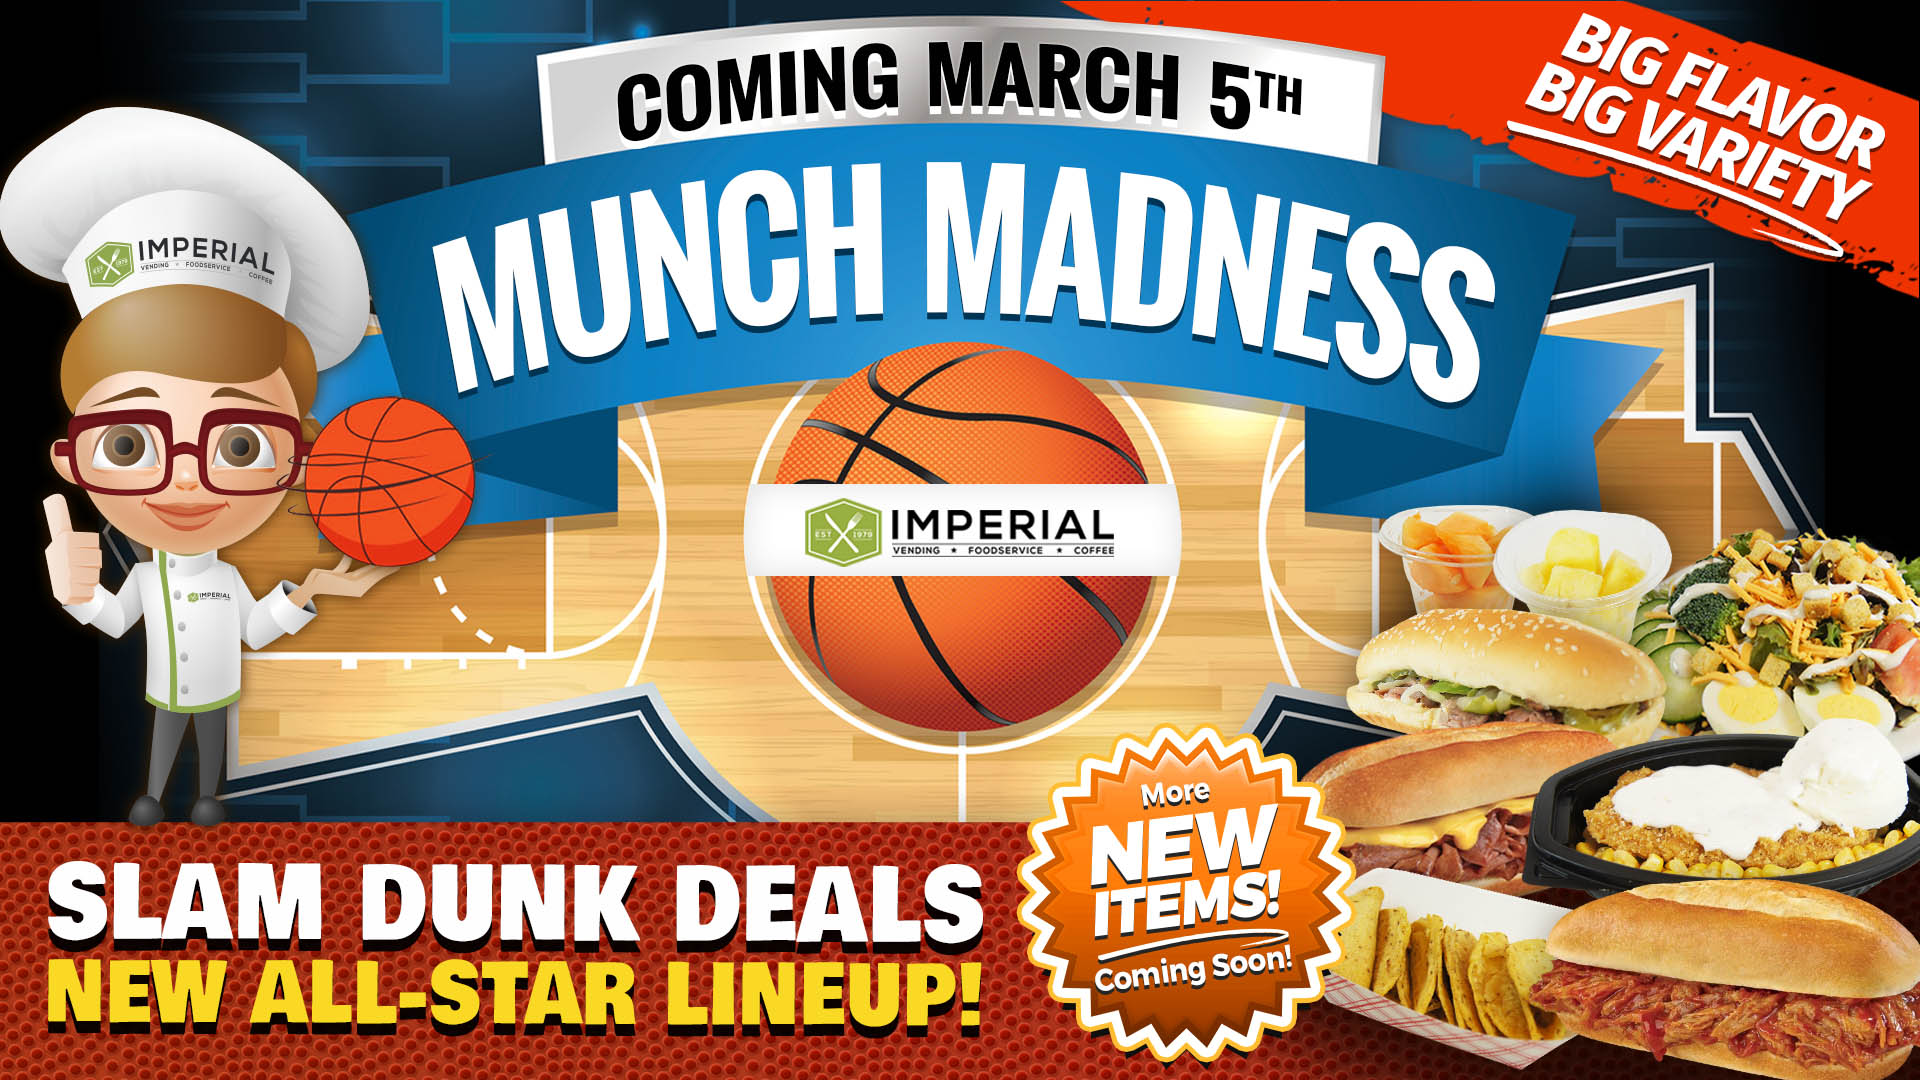 Munch Madness!